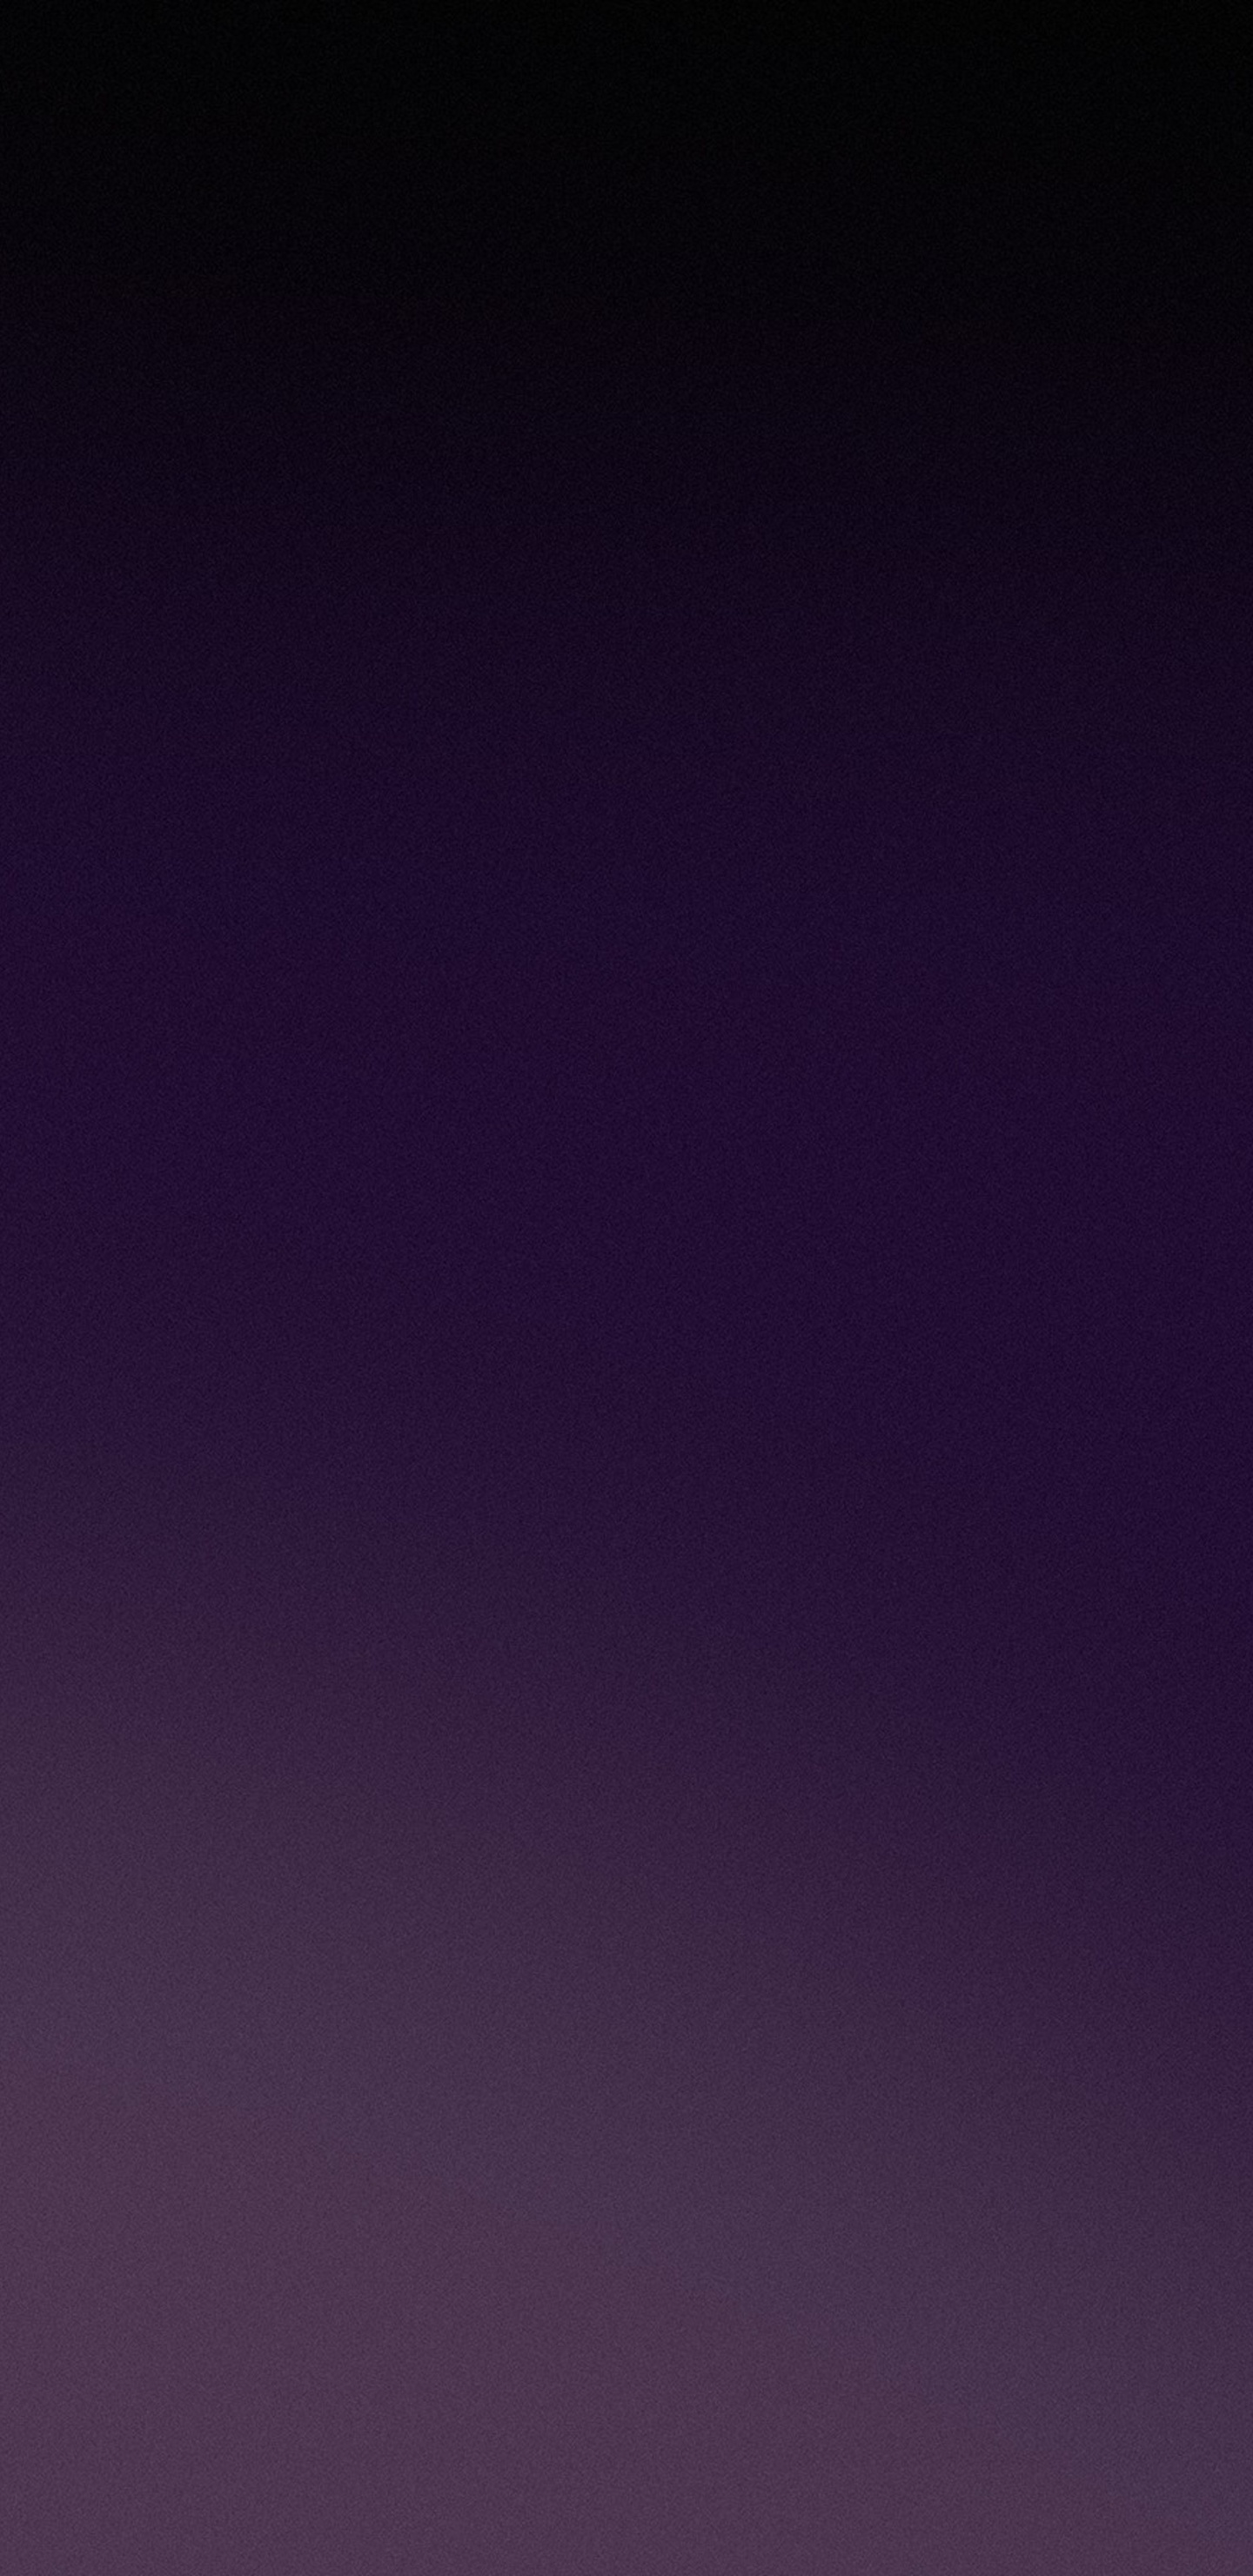 1440x2960 purple abstract hd samsung galaxy note 9 8 s9 - Samsung galaxy note 8 hd wallpaper ...